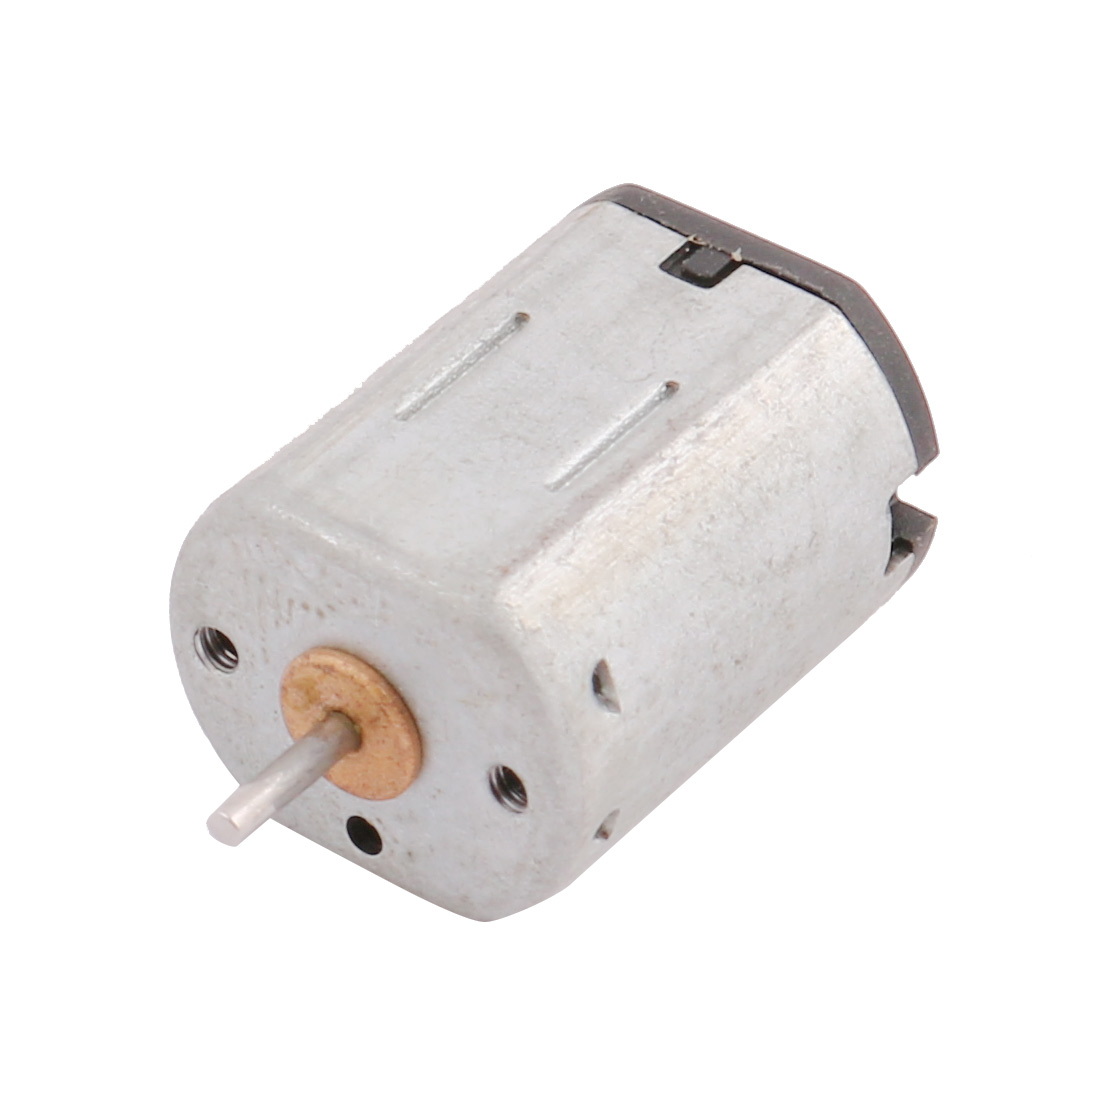 DC1.5V-4V 15000RPM Rotary Speed Electric M20 Mini Motor for DIY Model Toy